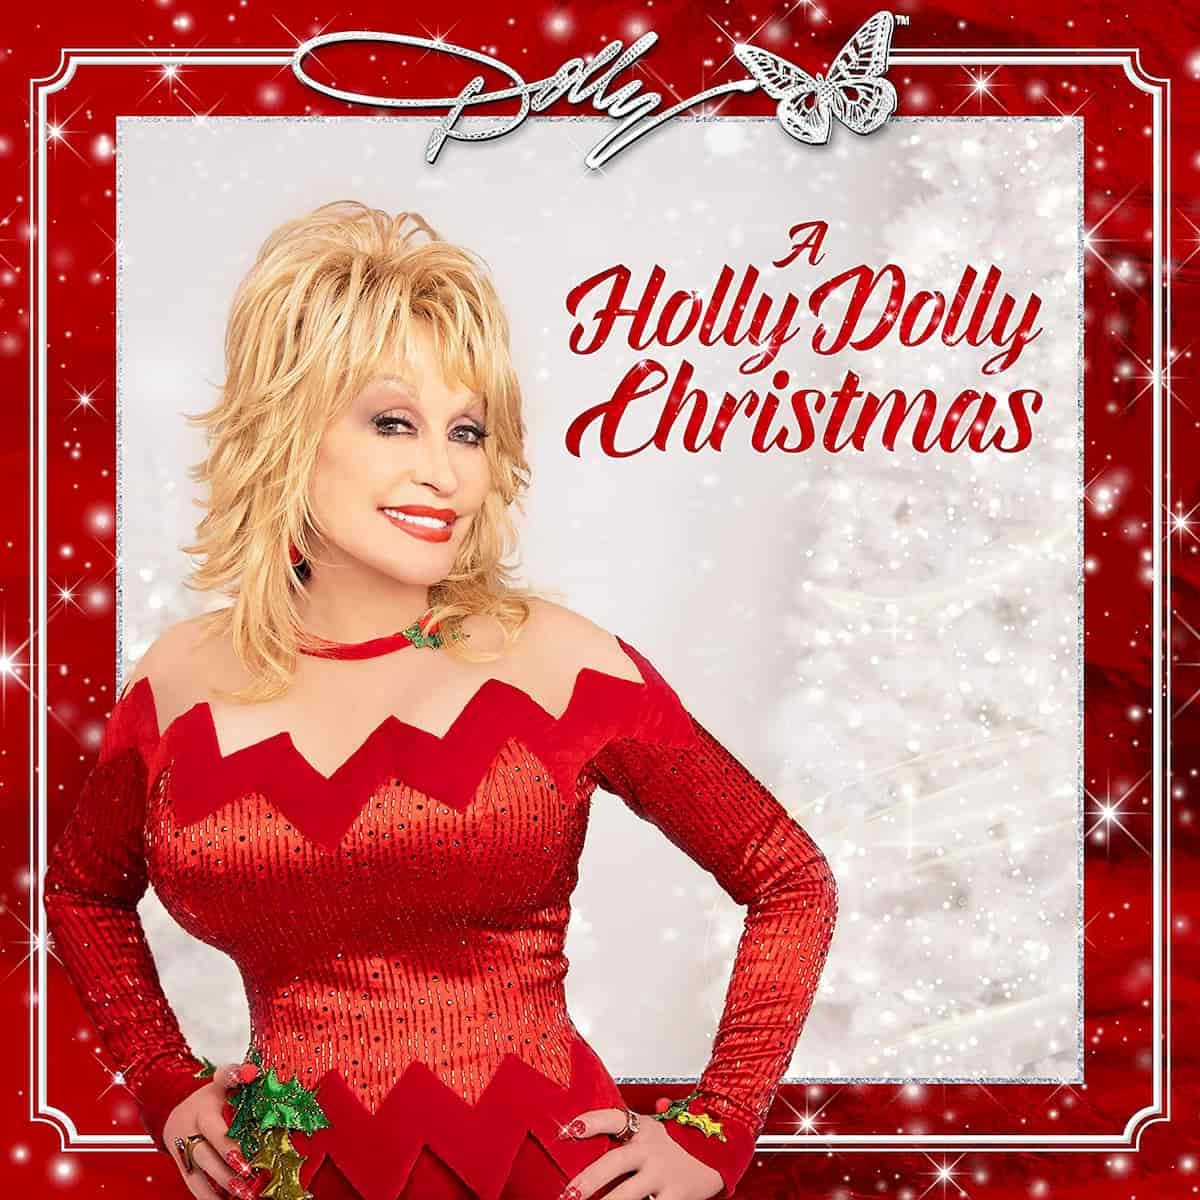 Dolly Parton A Holly Dolly Christmas - neue Weihnachts-CD 2020